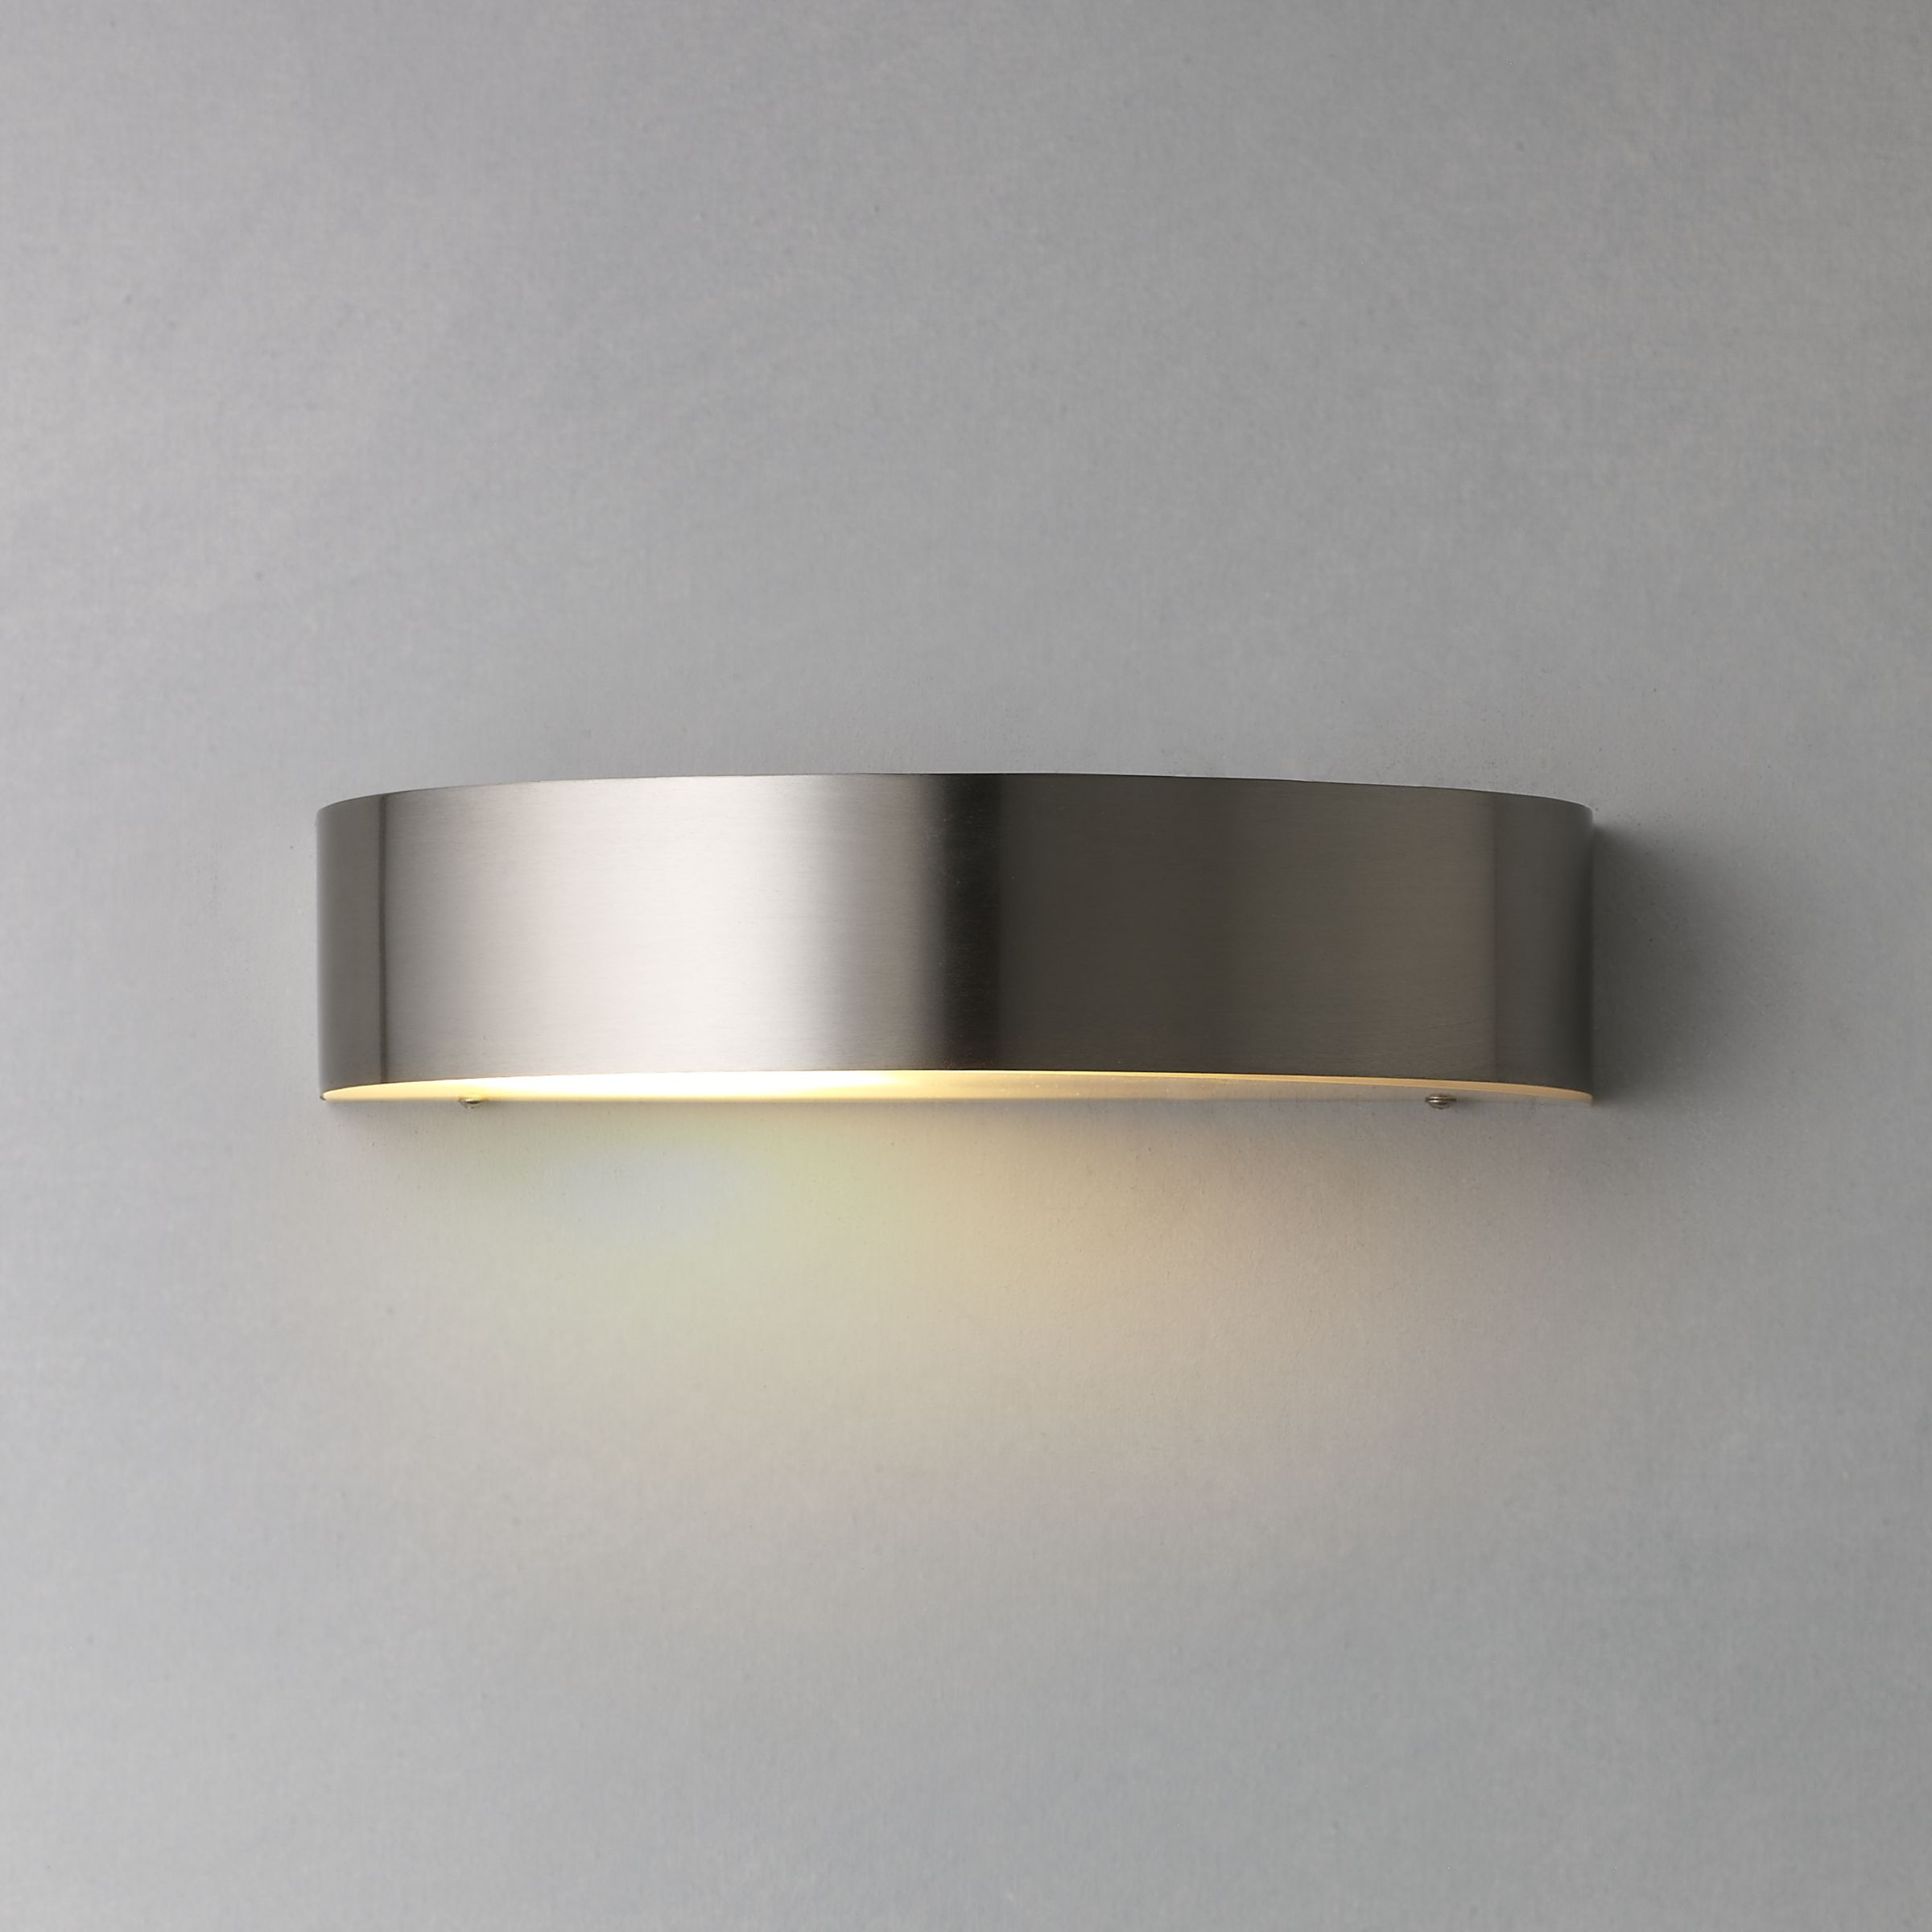 Wall Mounted Arc Lights : Buy Nordlux Arc Outdoor Wall Light, Stainless Steel John Lewis